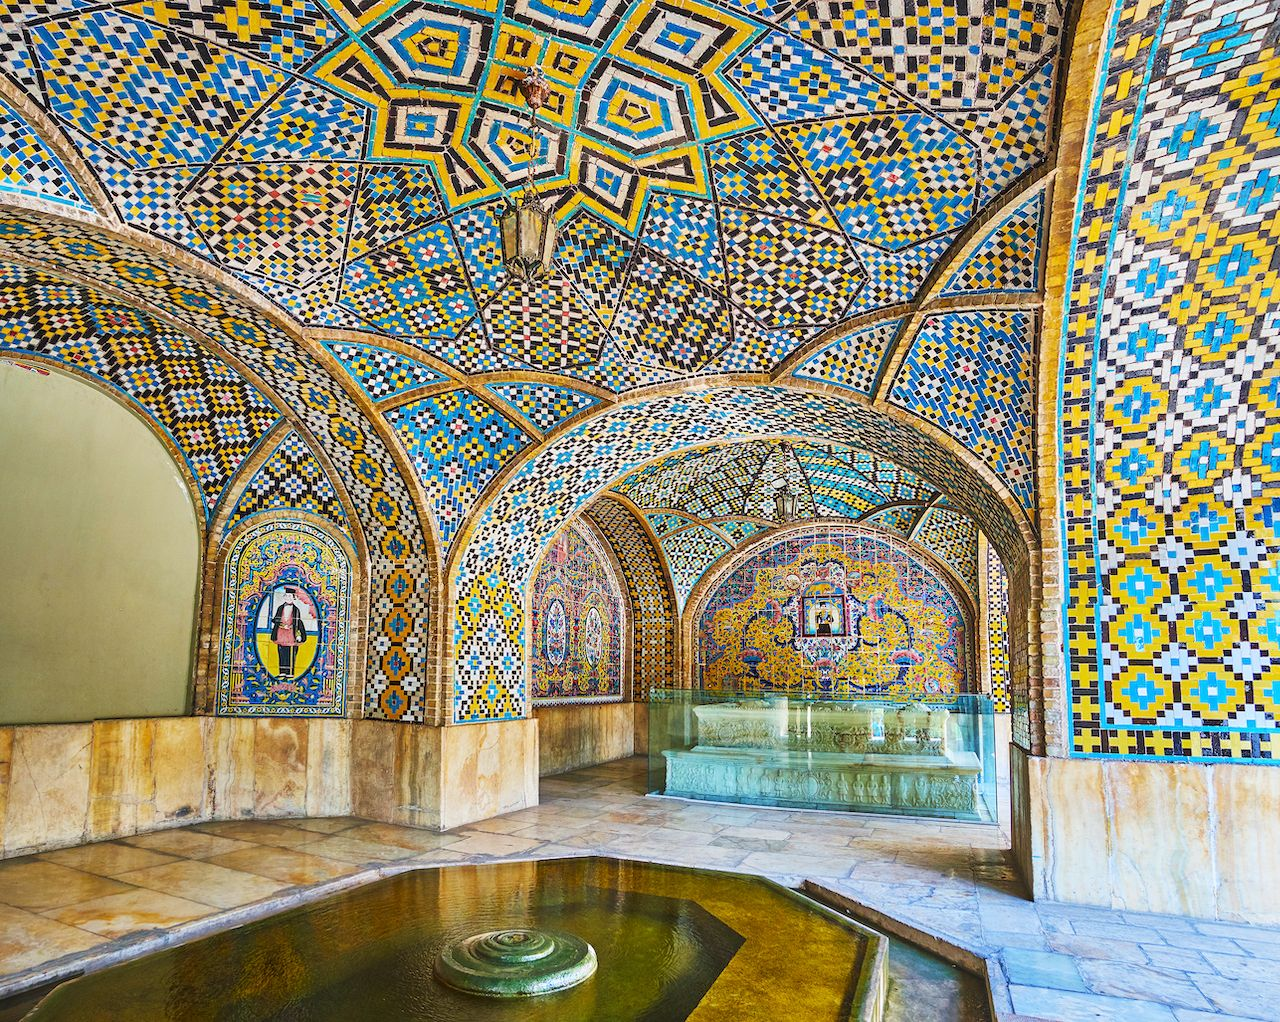 Golestan palace in Iran